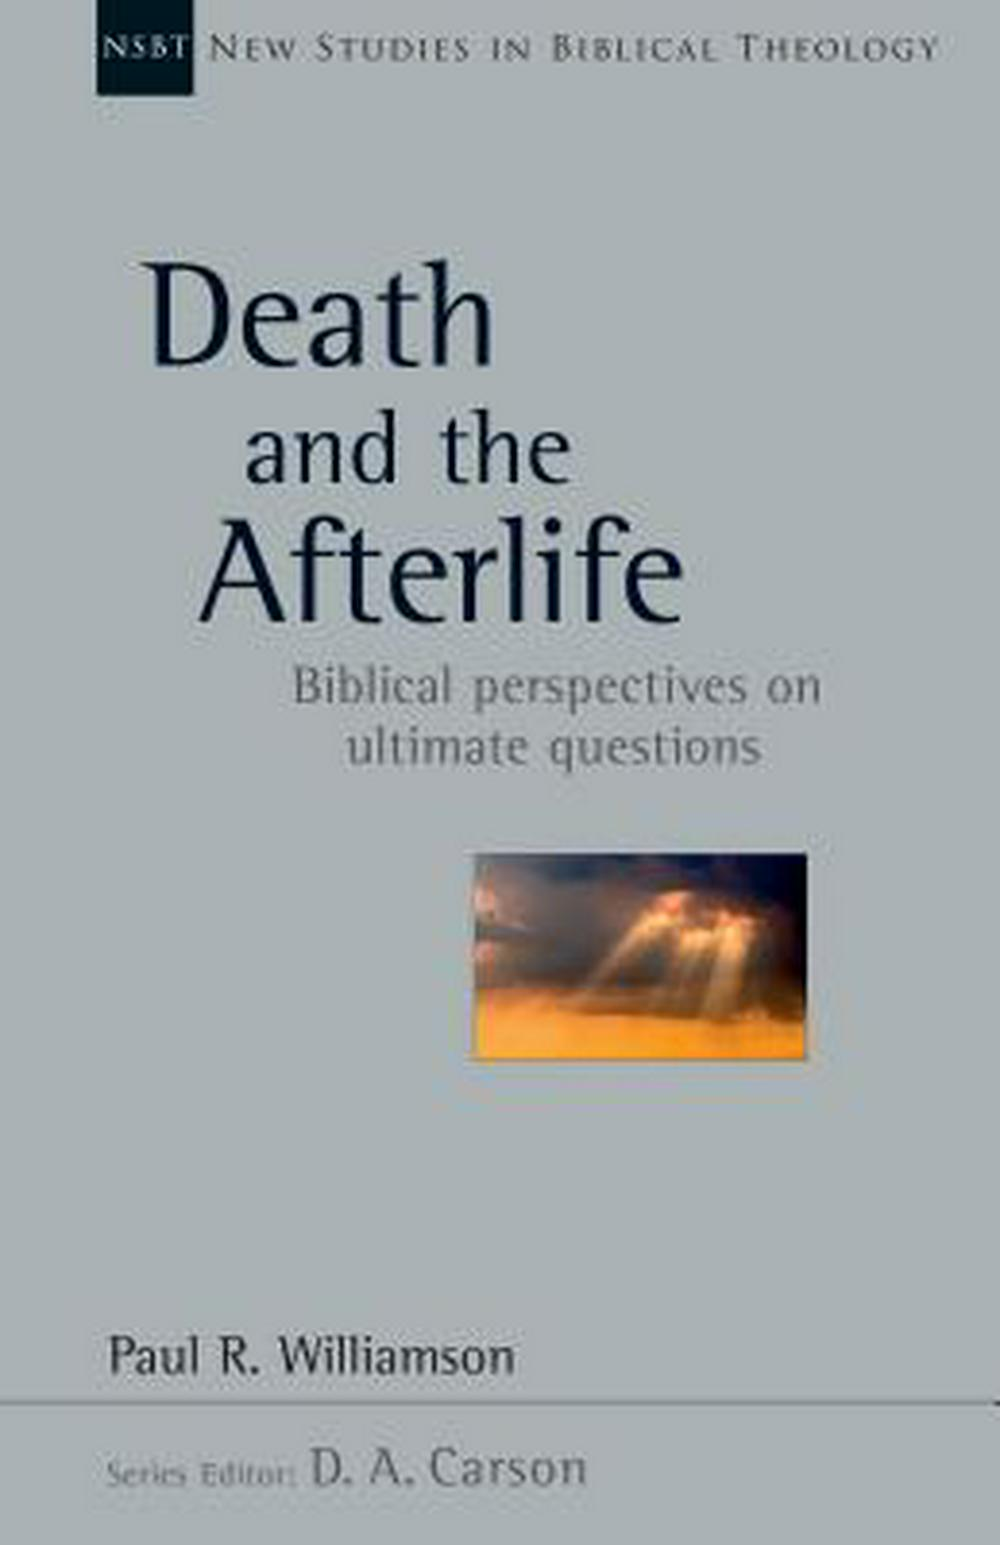 Death and the Afterlife: Biblical Perspectives on Ultimate Questions (New Studies in Biblical Theology)